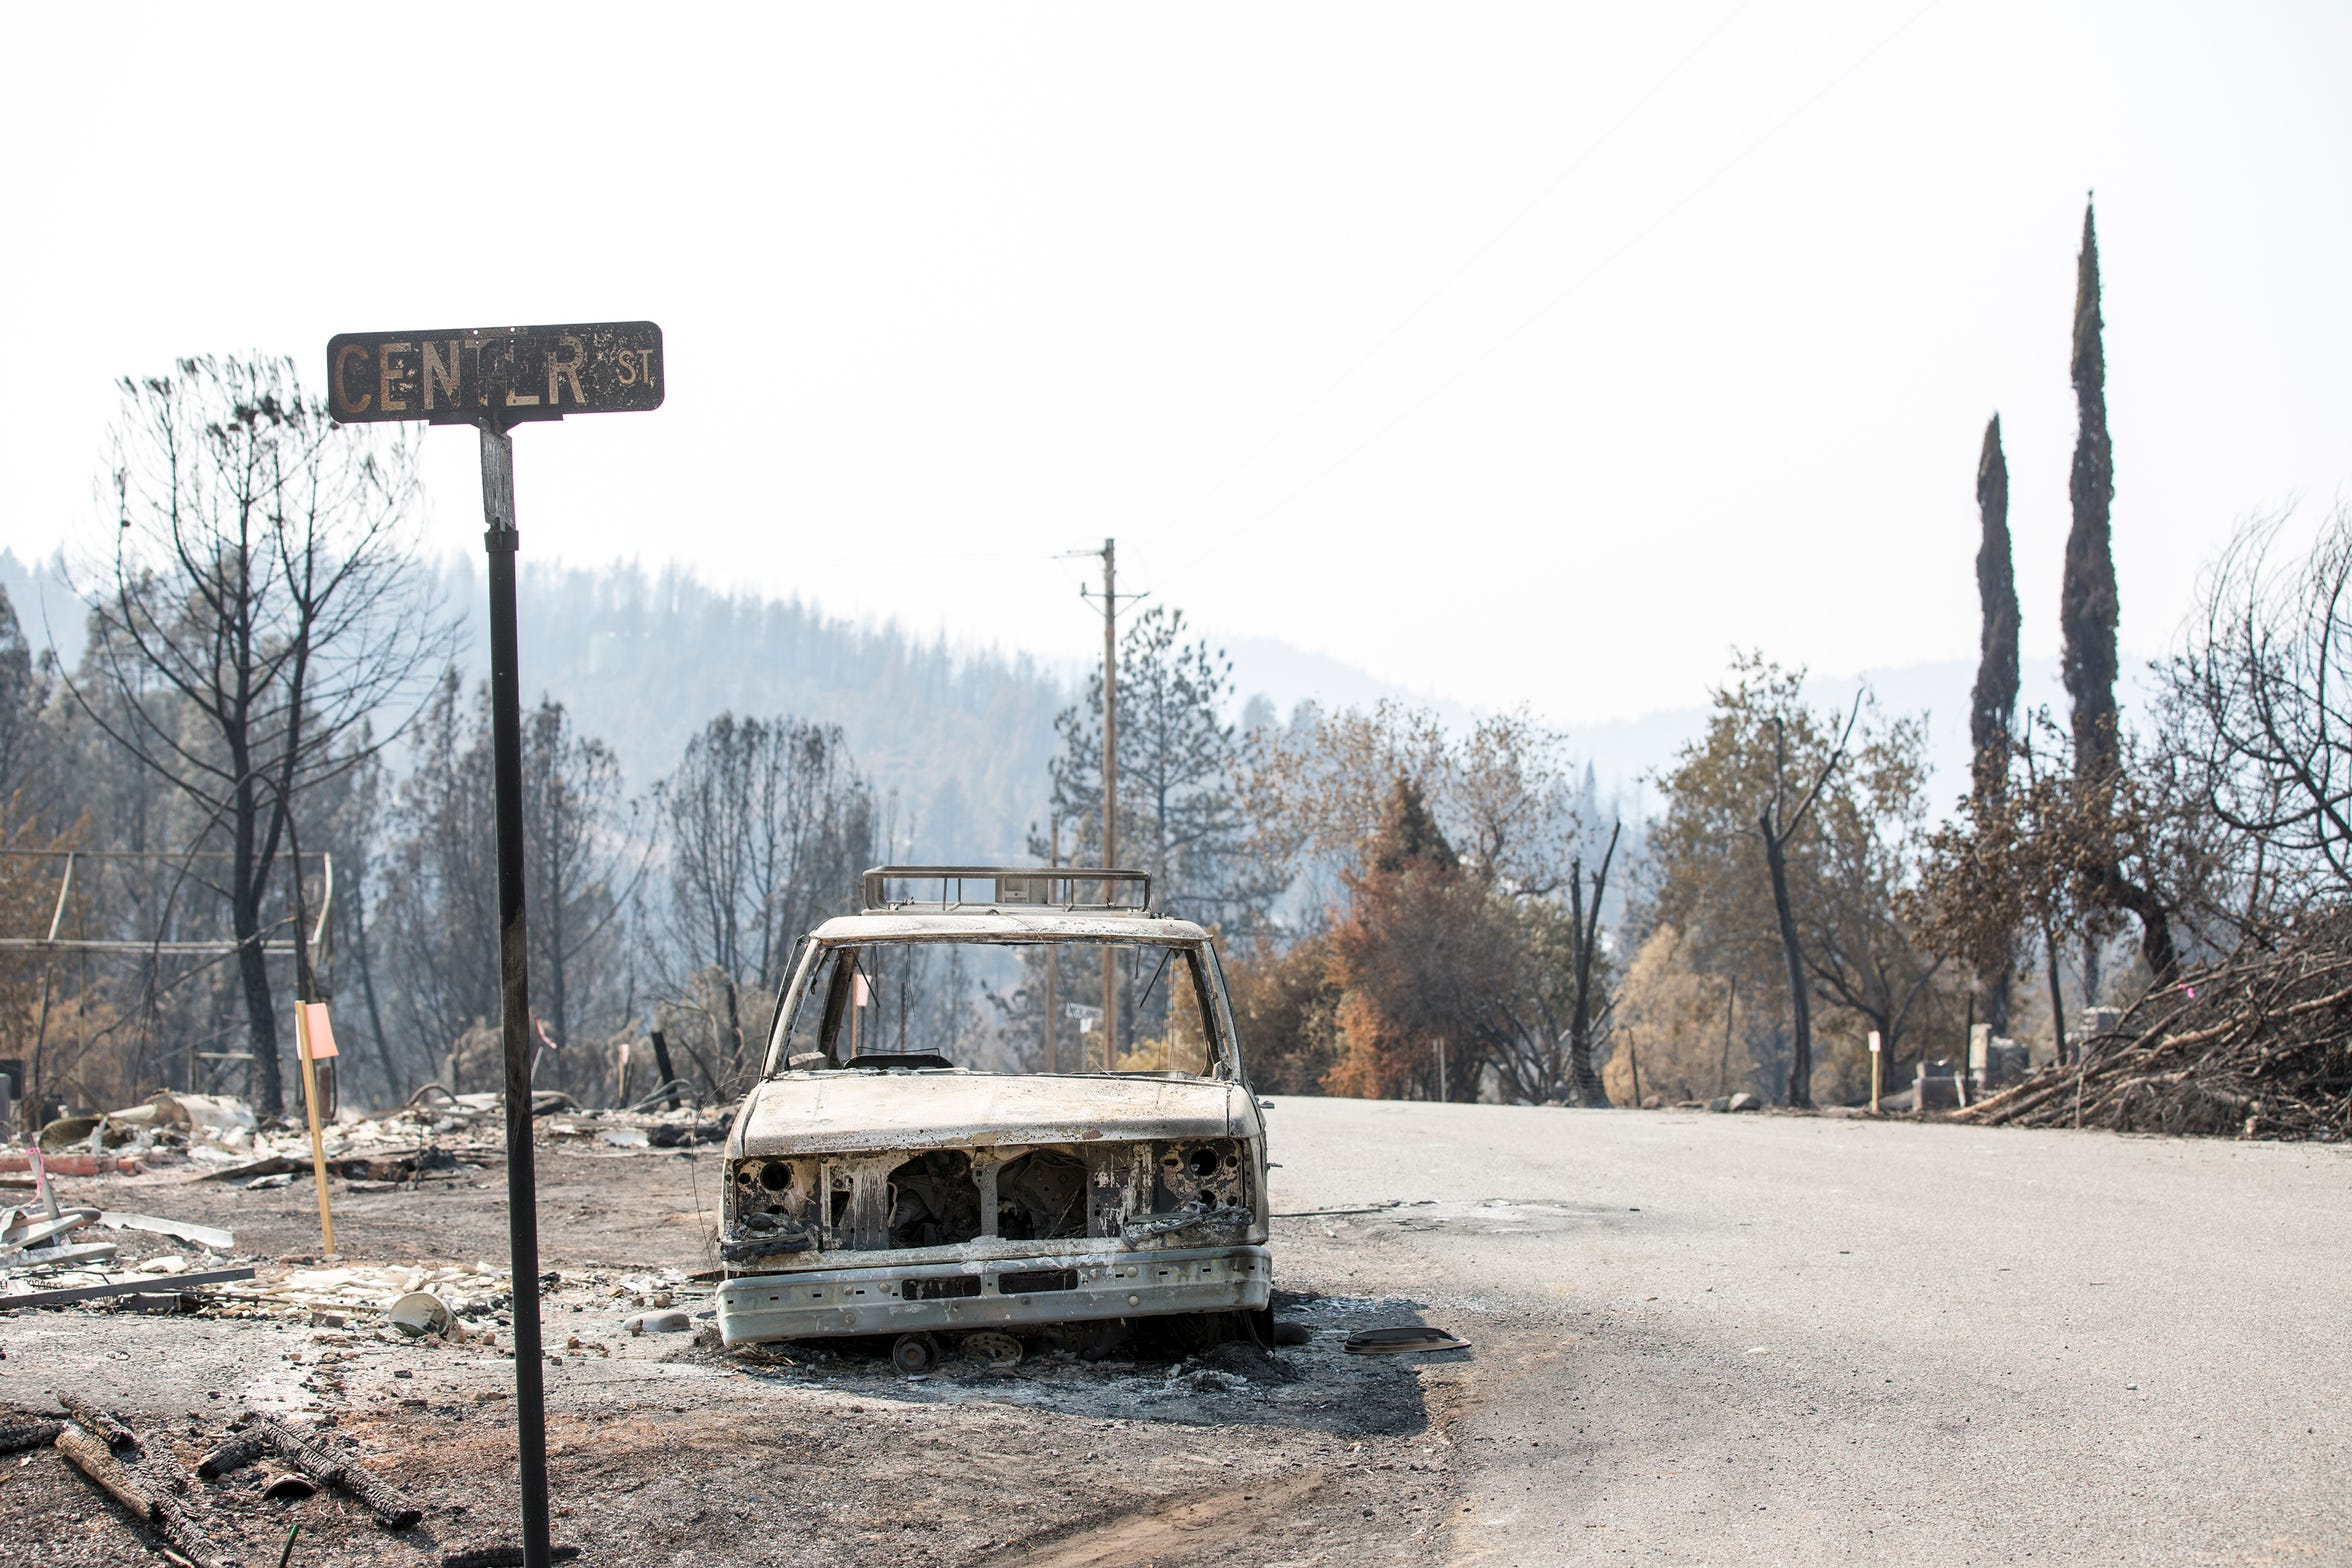 The town is decimated following the Carr fire tornado in Keswick, Calif., Tuesday, August 21, 2018.